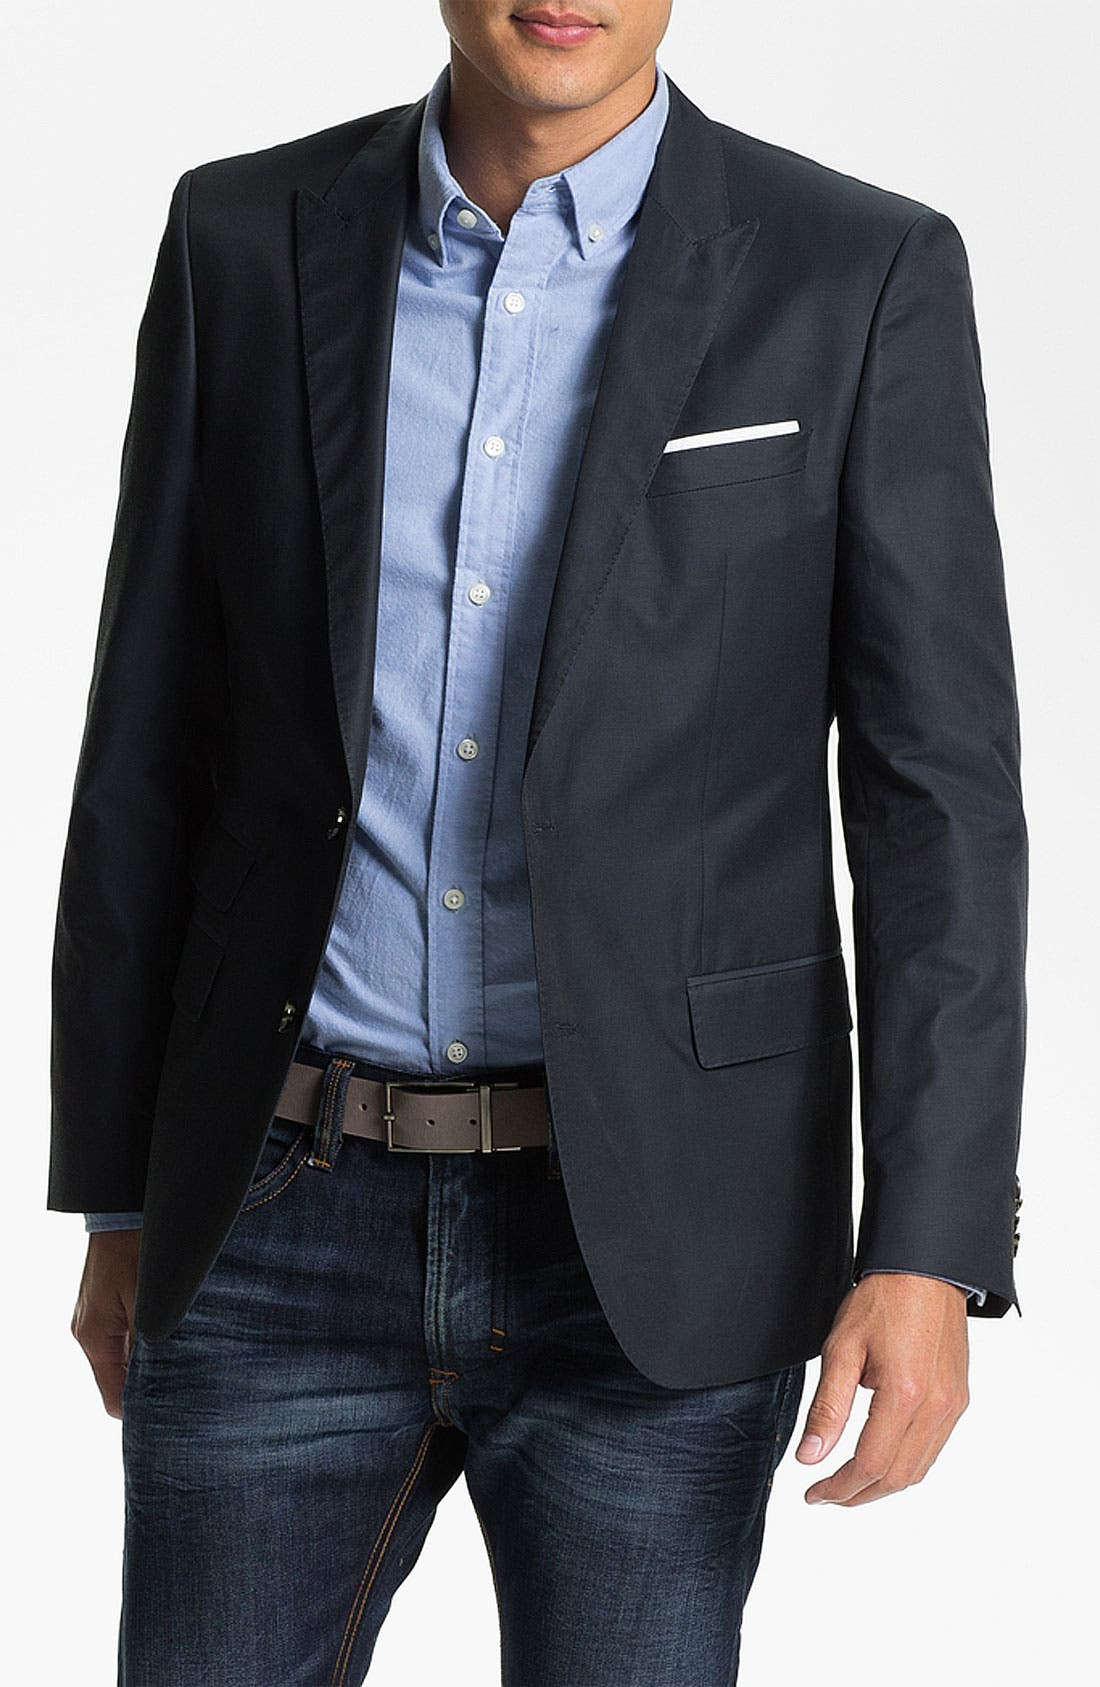 Alternate Image 1 Selected - BOSS HUGO BOSS 'Hold' Trim Fit Blazer